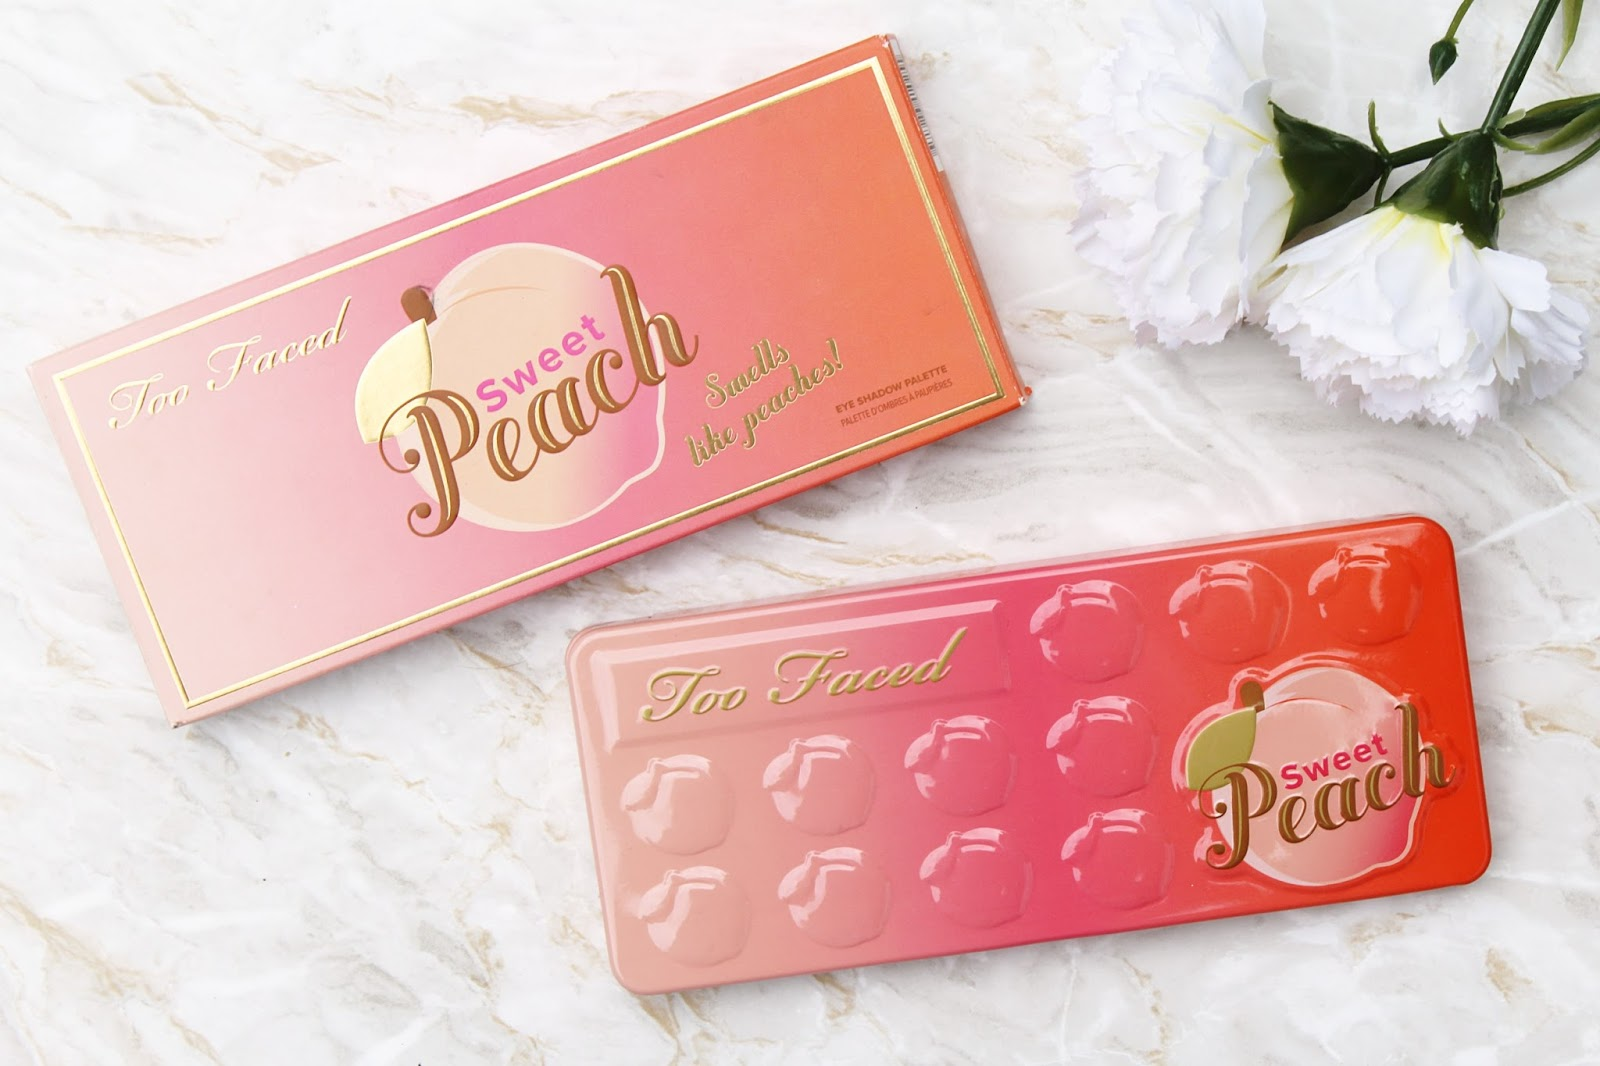 Too Faced Sweet Peach Palette Review with Swatches